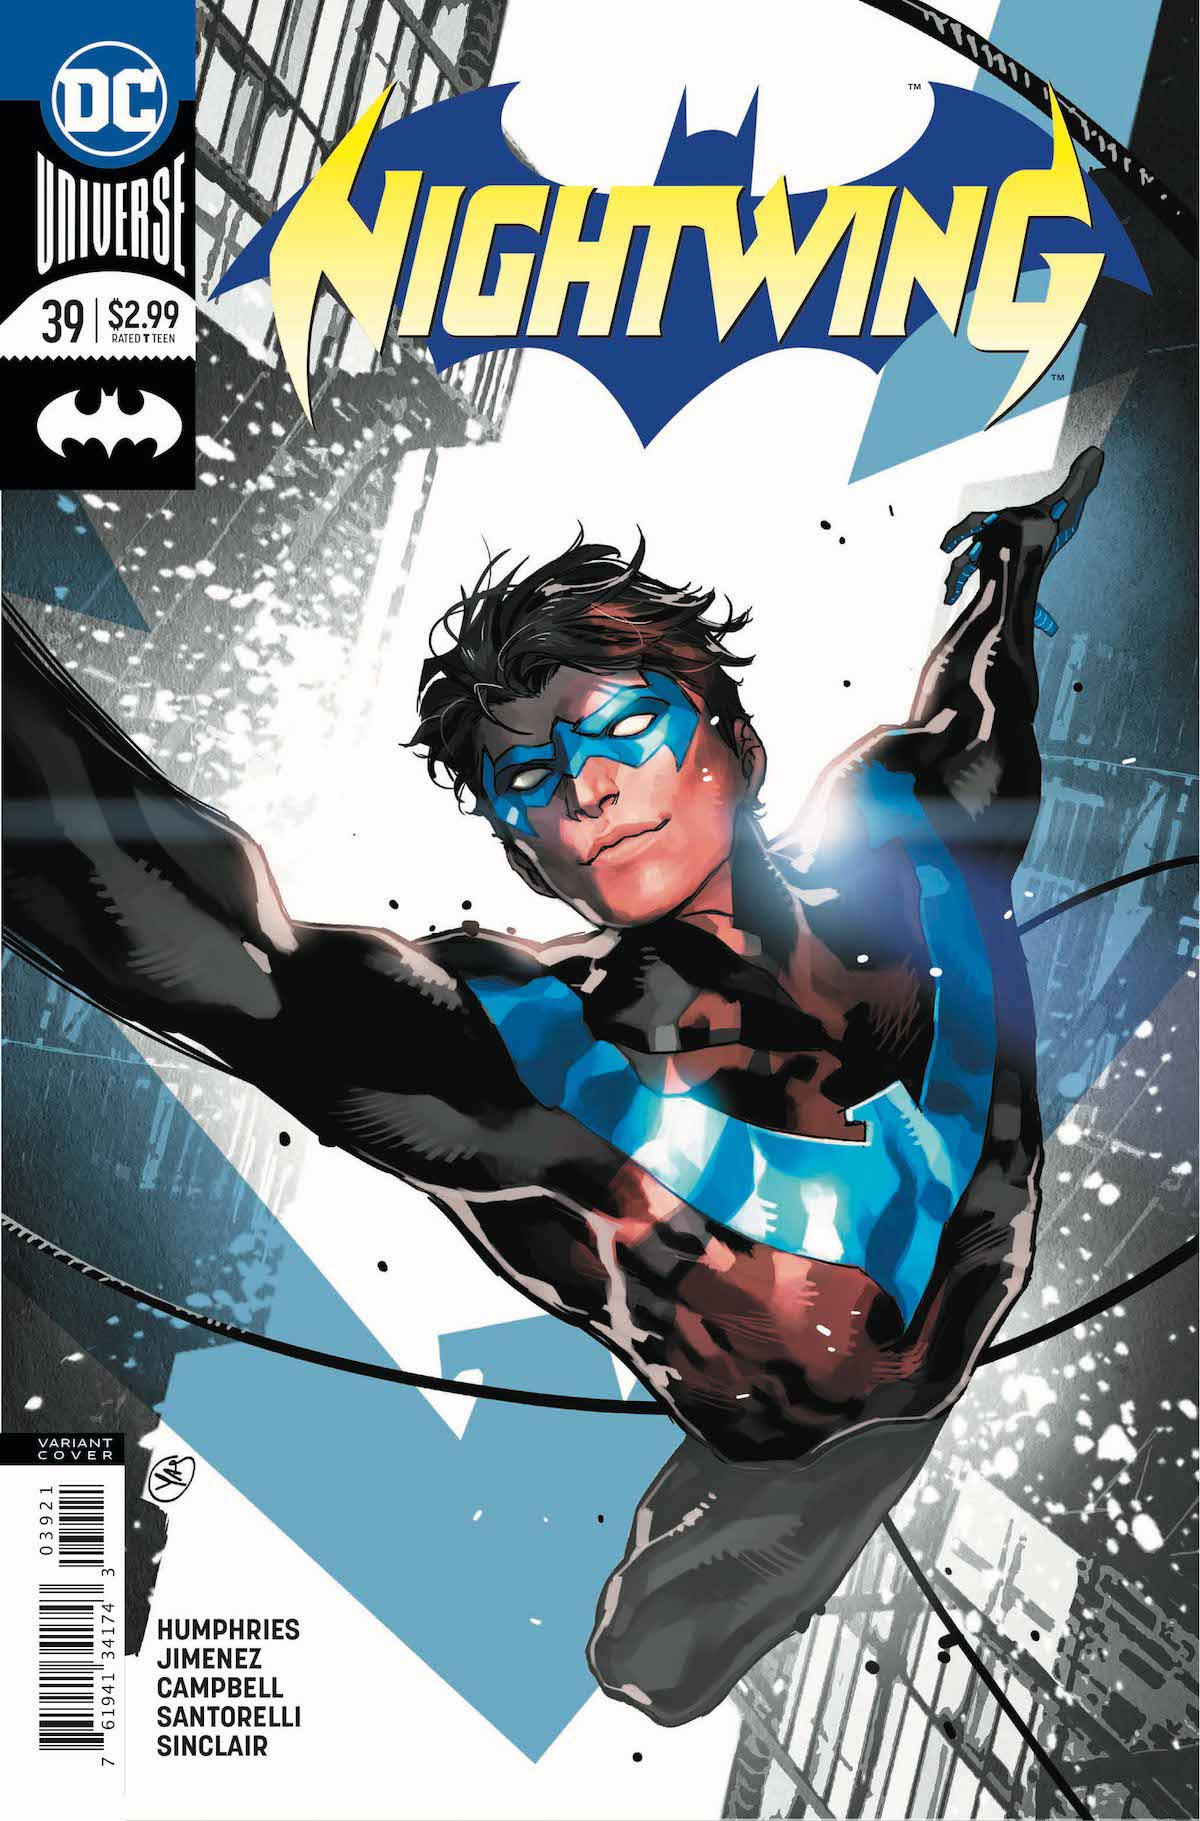 Nightwing #39 variant cover